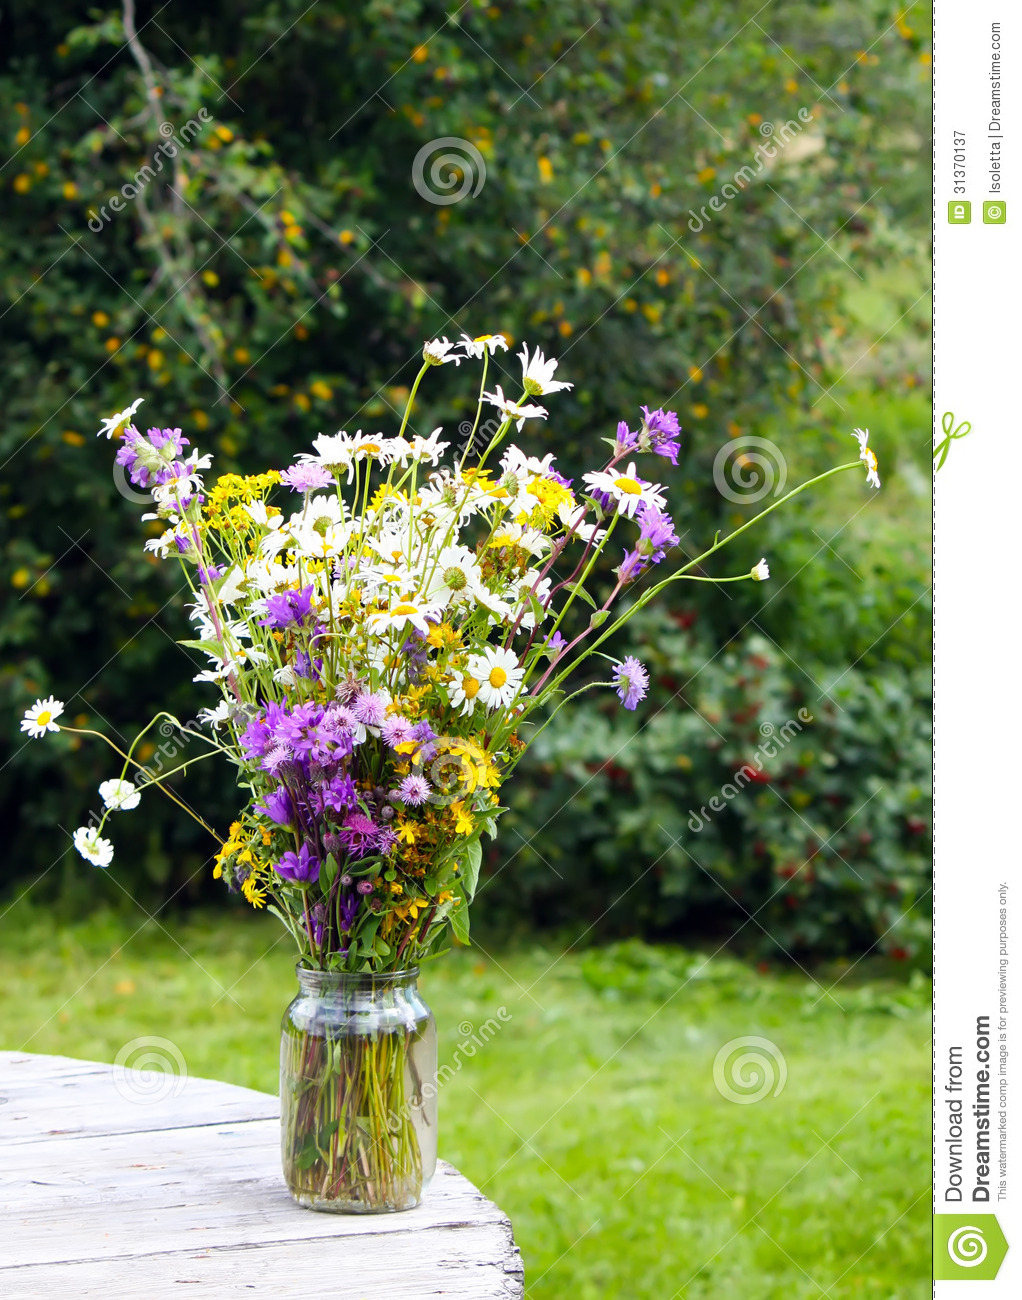 Bouquet stock illustration. Image of insects, green ...